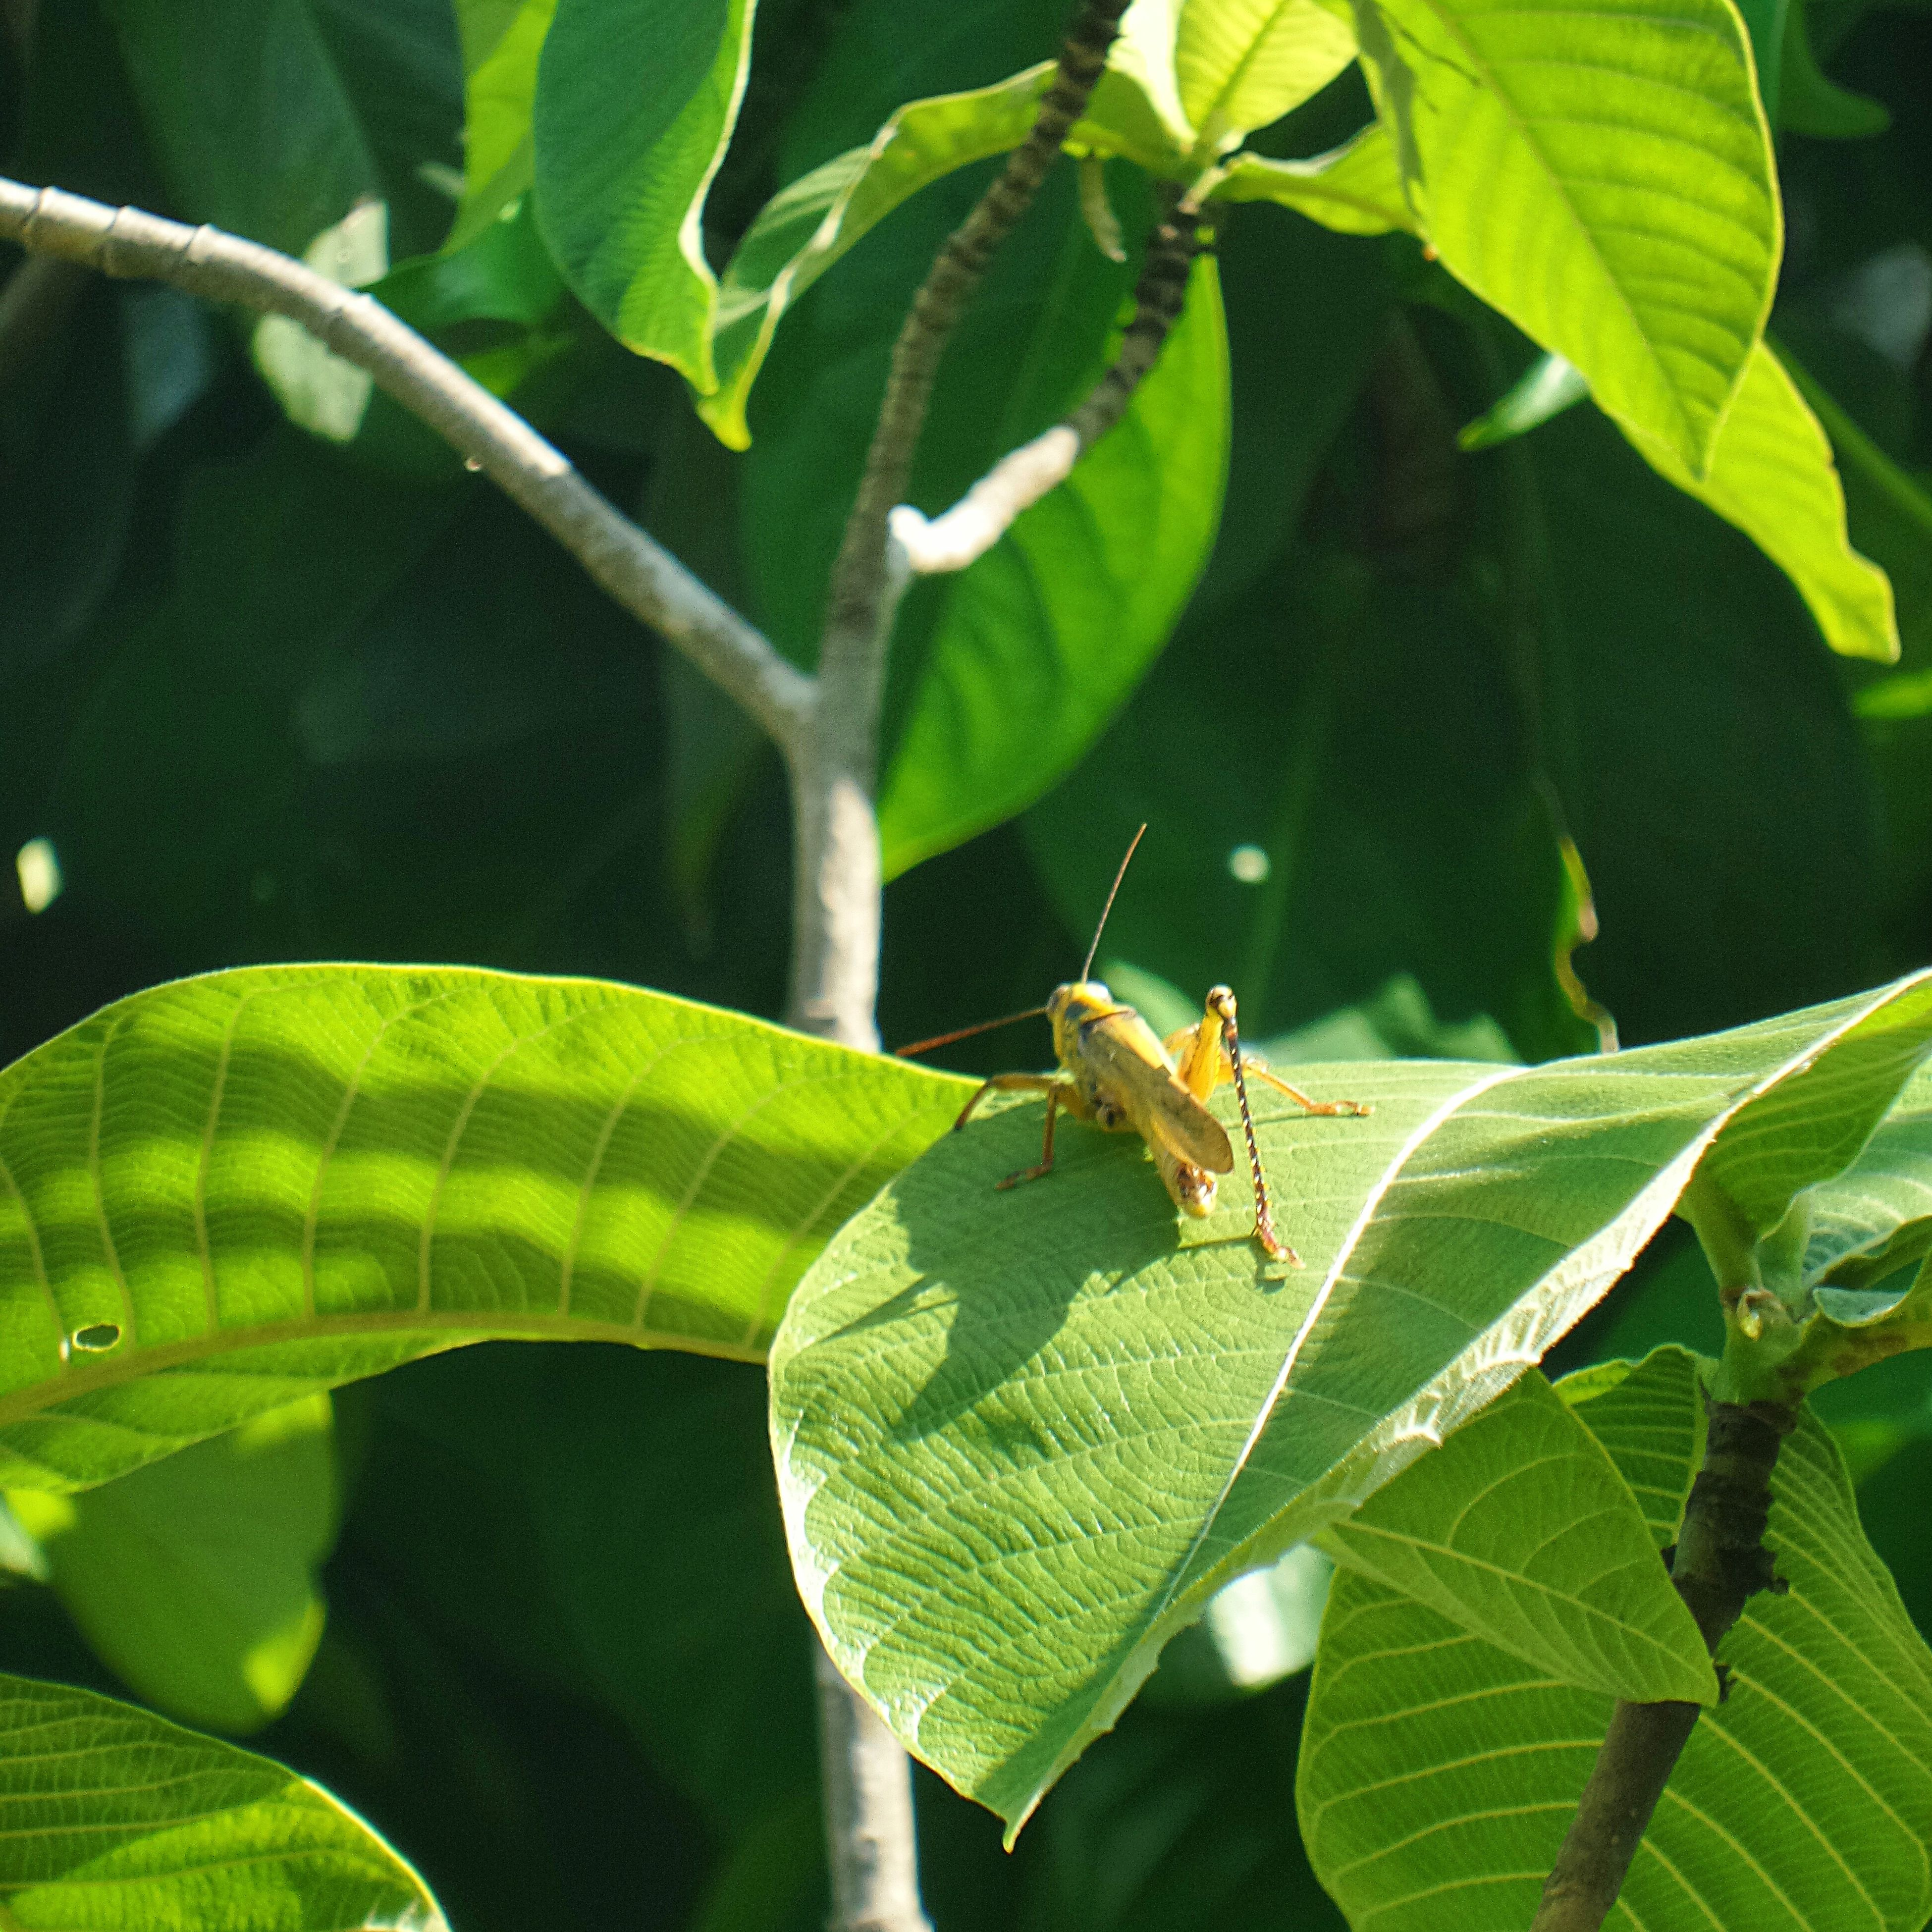 animal themes, animals in the wild, leaf, one animal, wildlife, green color, insect, branch, nature, plant, growth, perching, tree, close-up, outdoors, day, two animals, no people, focus on foreground, full length